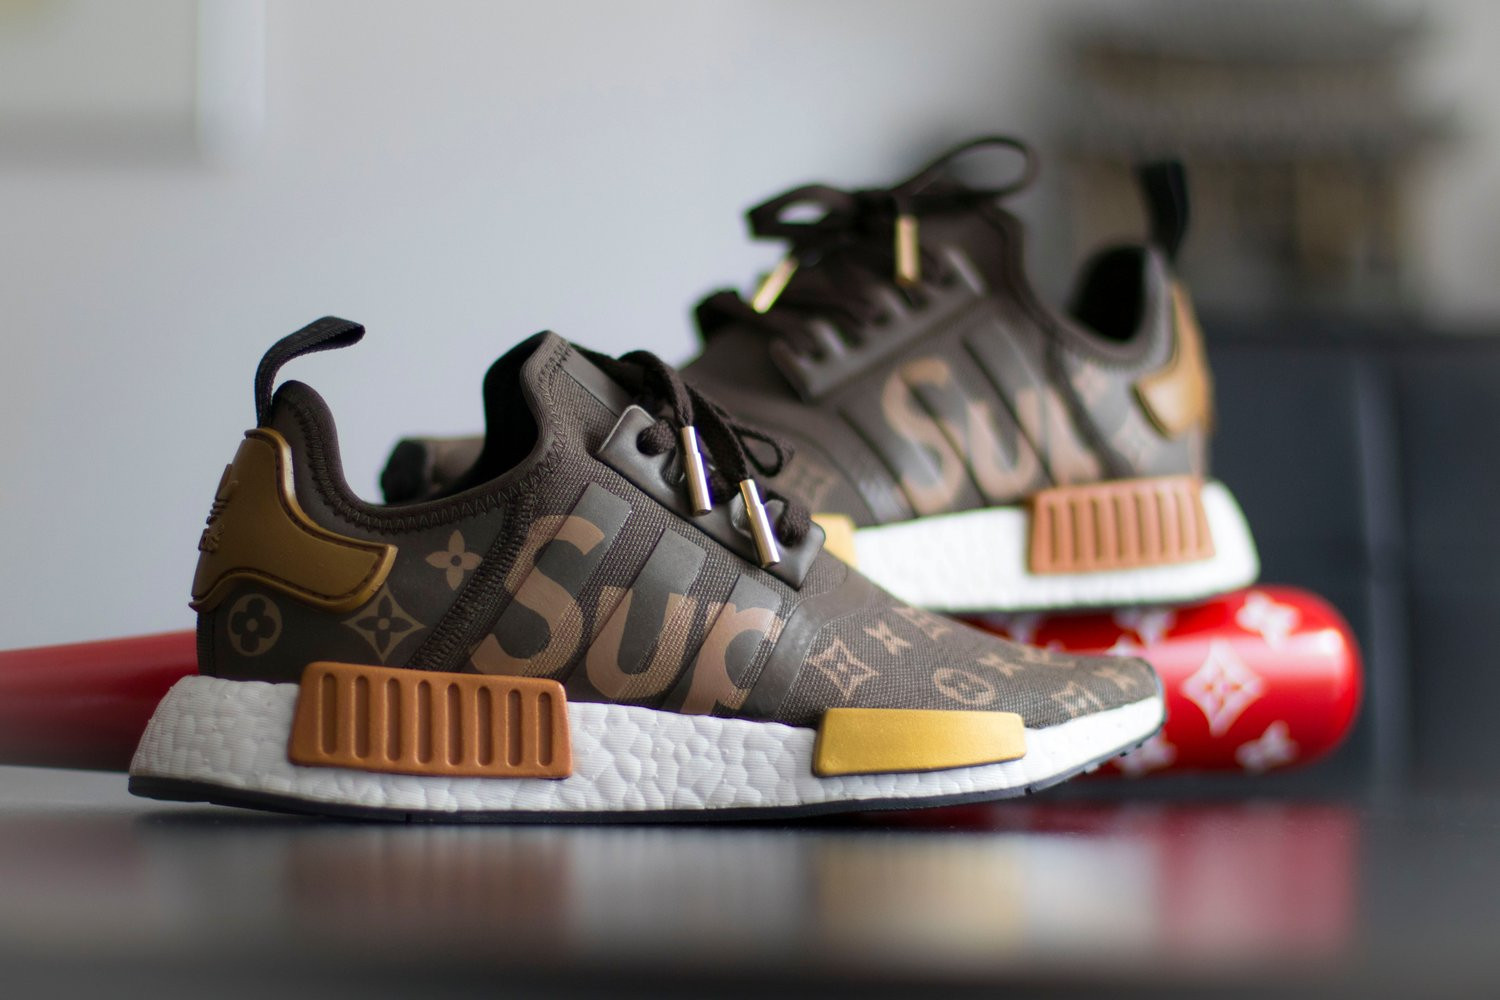 85b1755a98a Adidas NMD R1 x Supreme Louis Vuitton size 11 . Cheap NMD R1